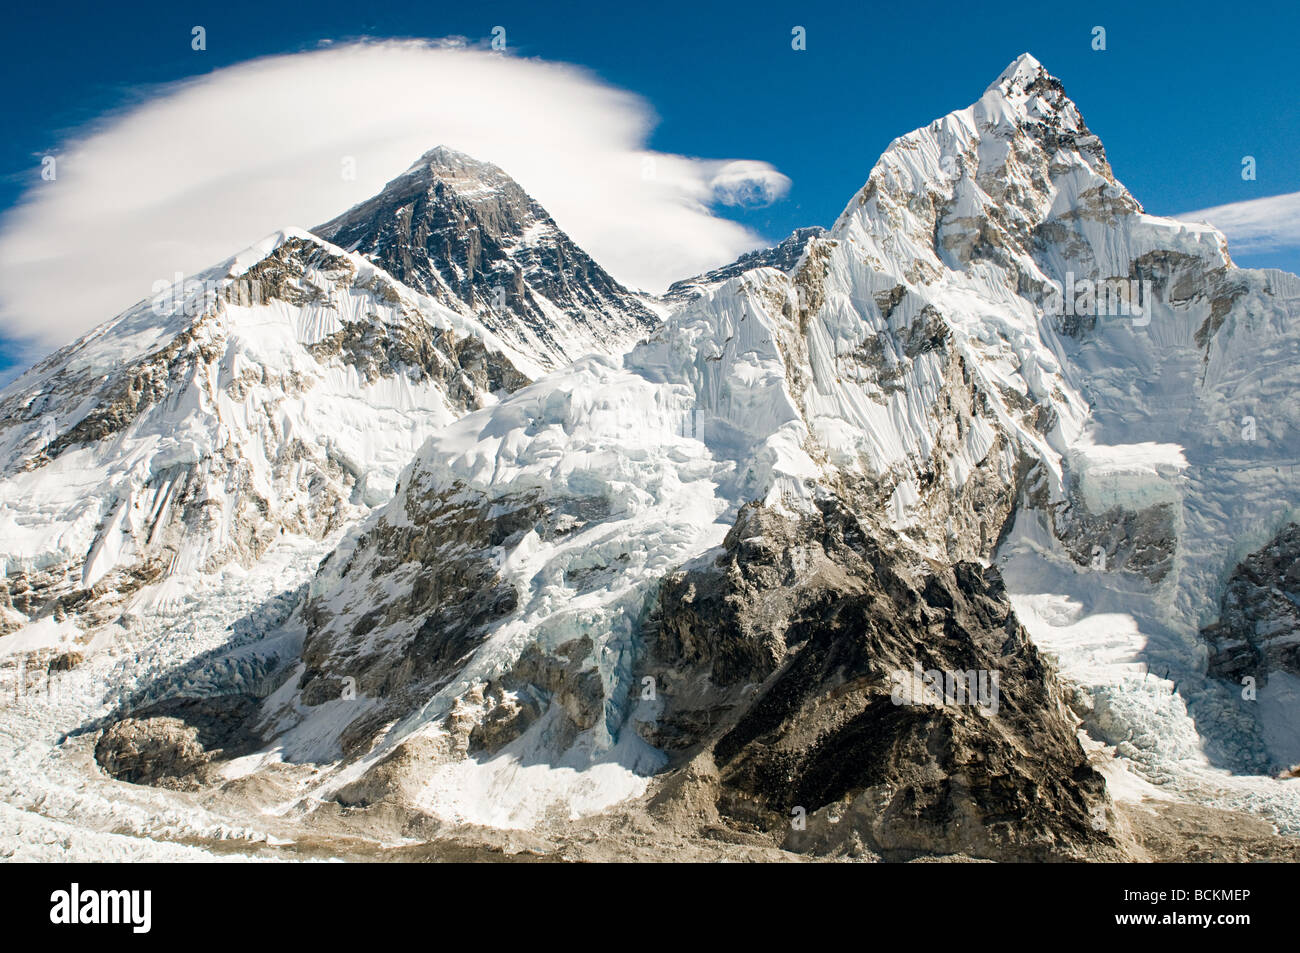 Mount everest and lhotse - Stock Image